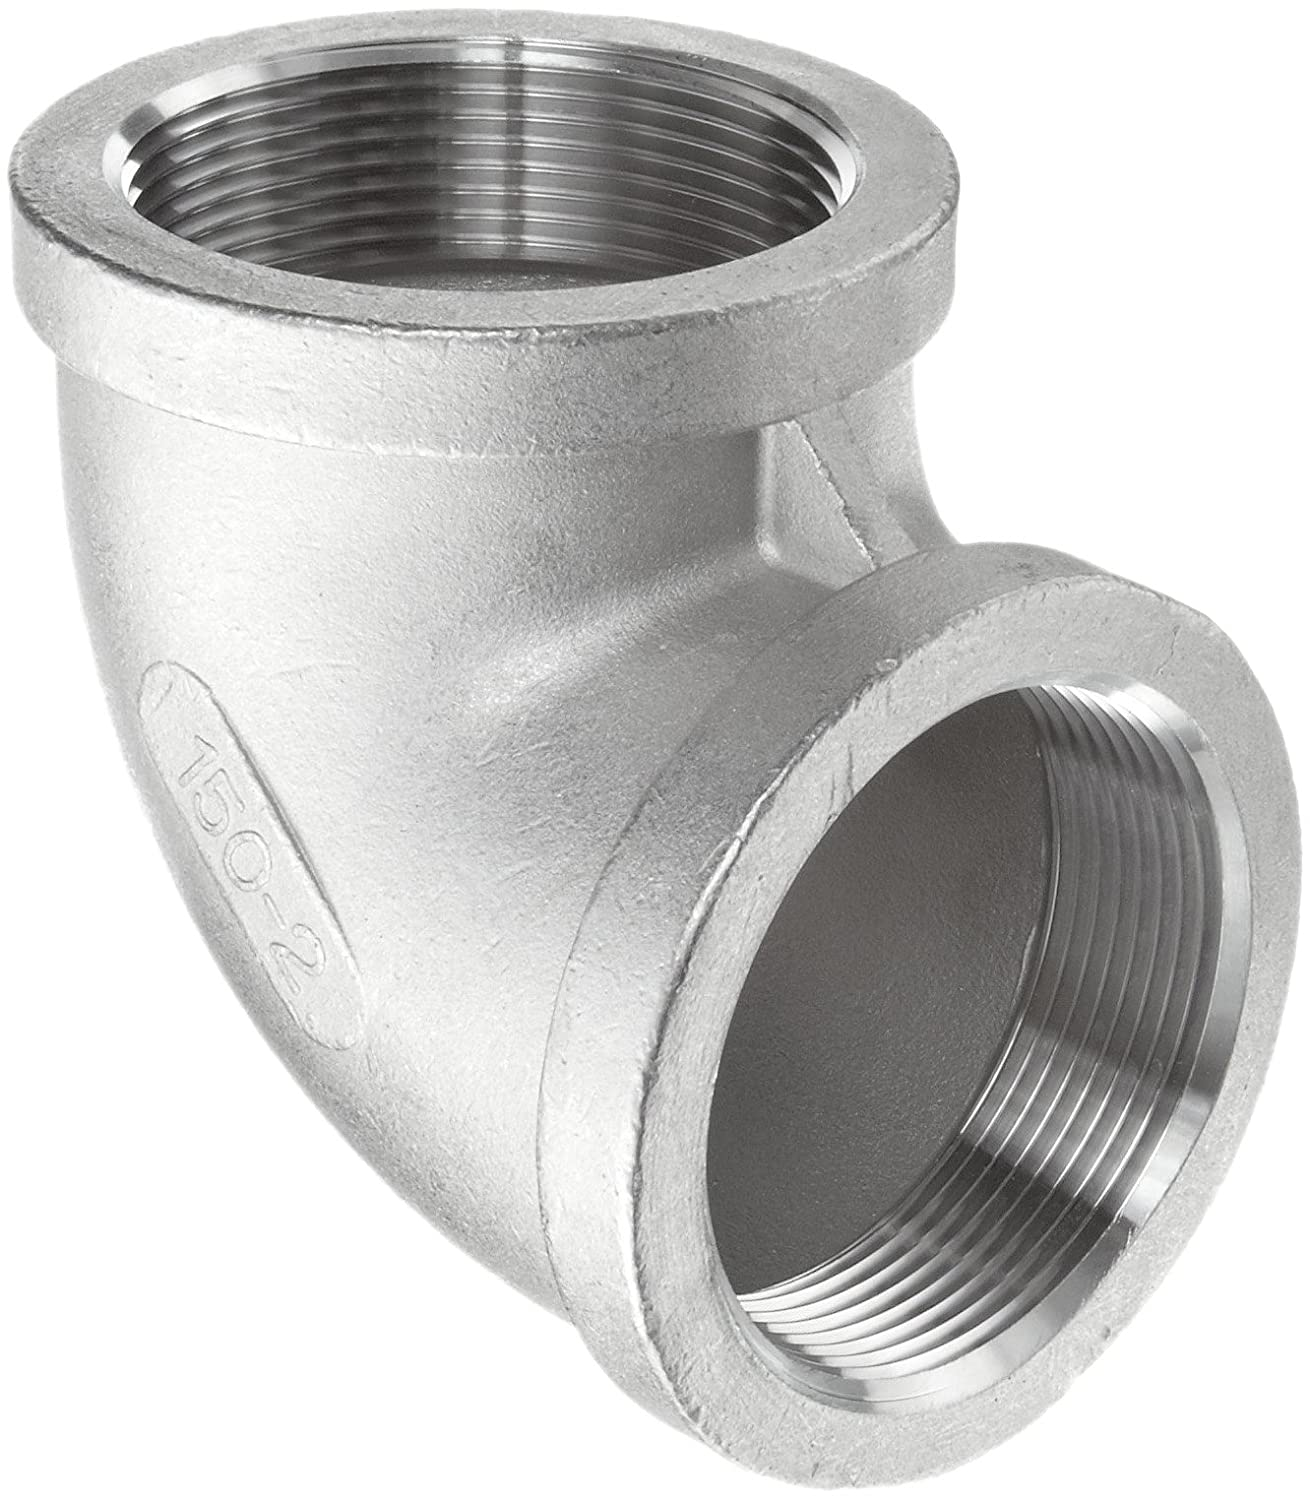 MSS SP-114 1//8 NPT Female 45 Degree Elbow Stainless Steel 316 Cast Pipe Fitting